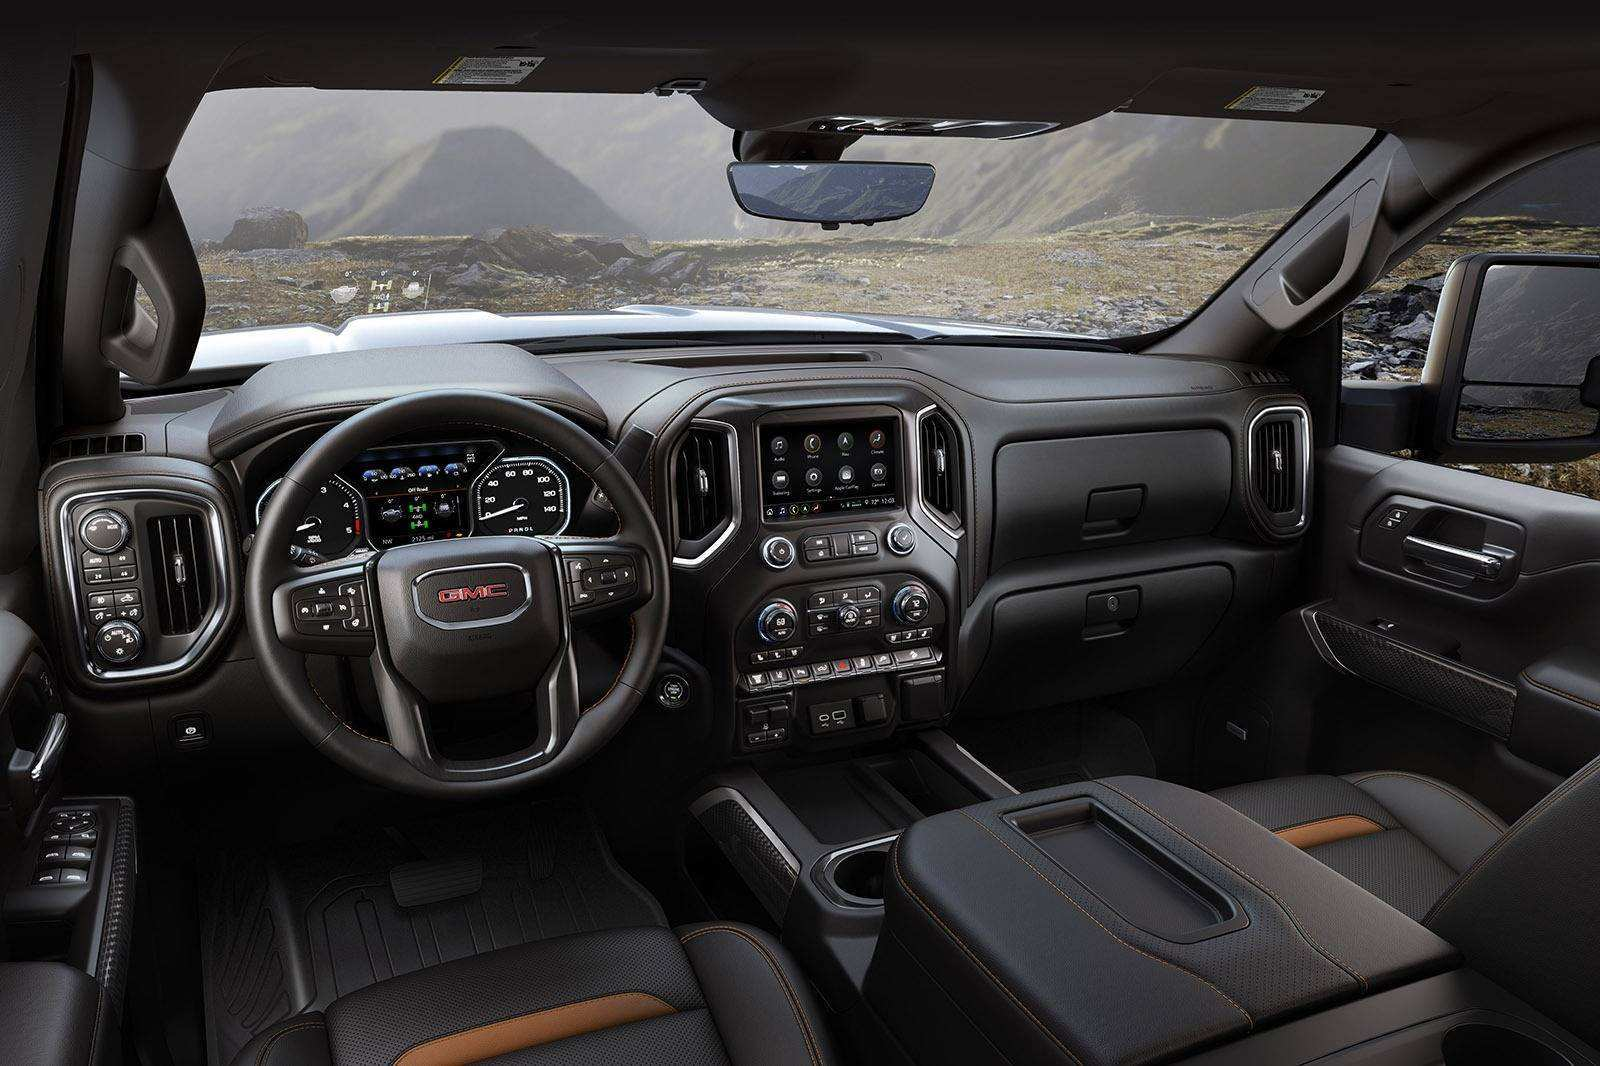 27 Great 2020 Gmc Sierra Interior Price for 2020 Gmc Sierra Interior